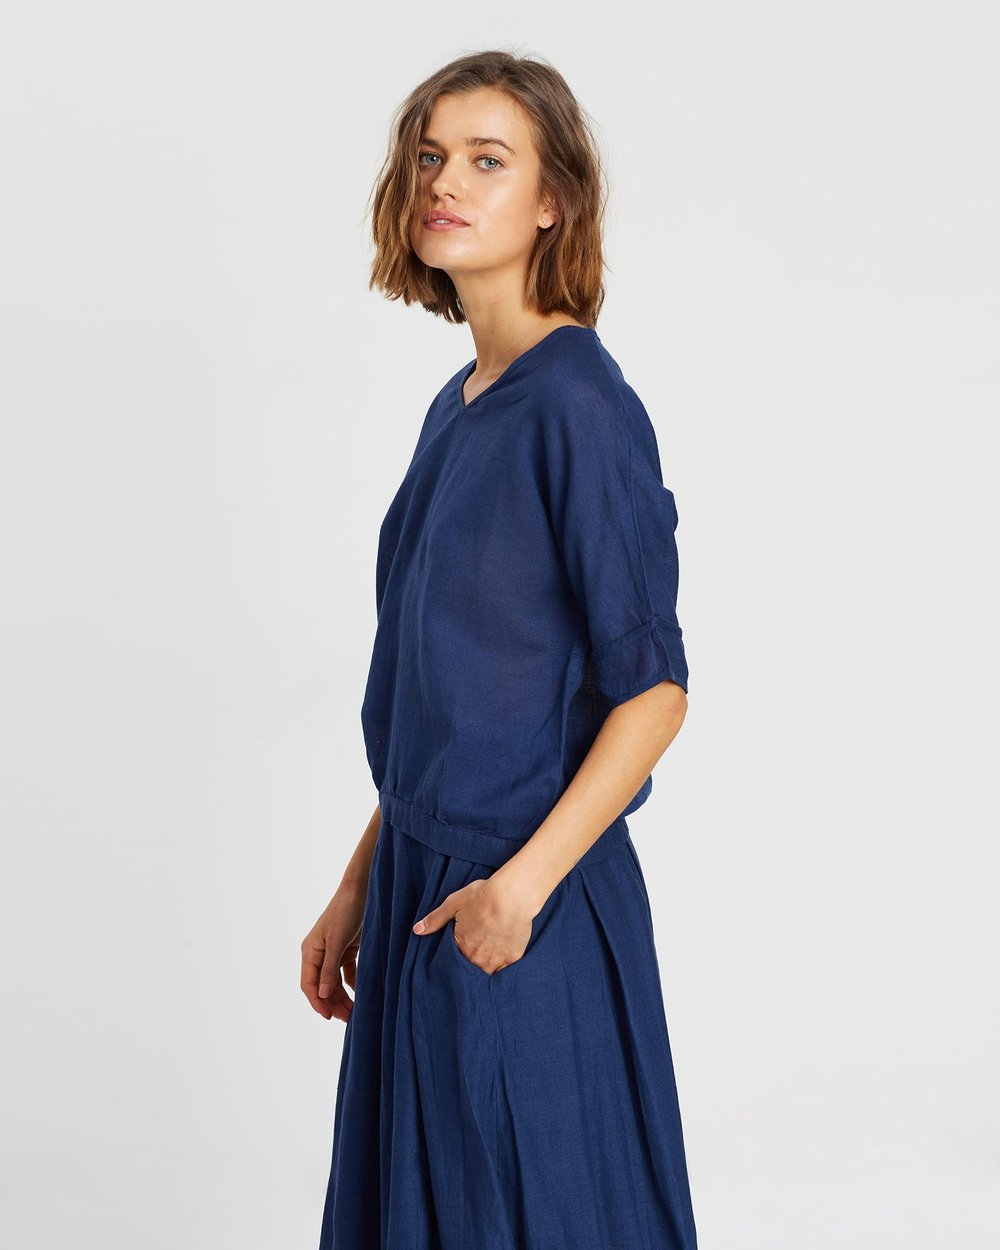 e63a5bf7ffa Colette Top by Kaja Clothing Online